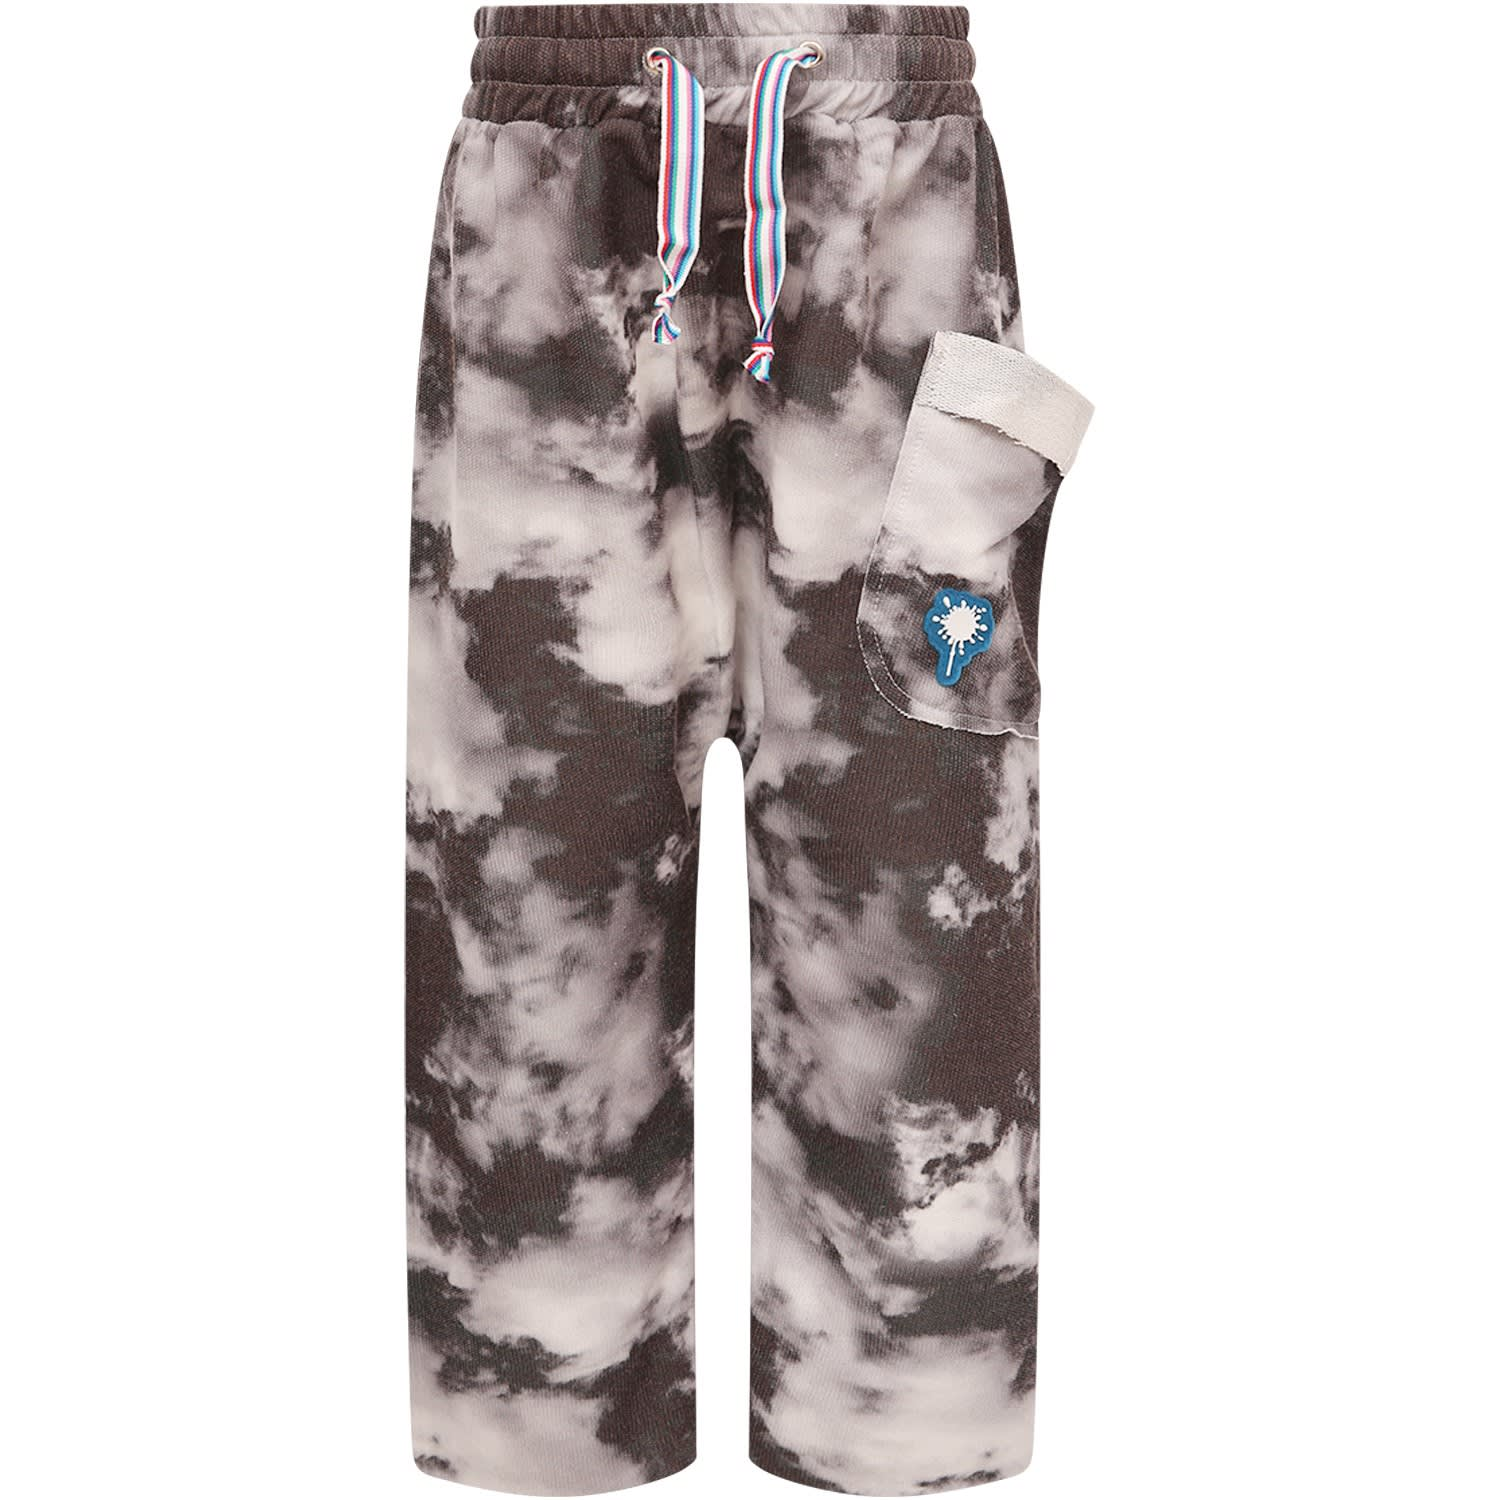 Black Pants With Grey Clouds